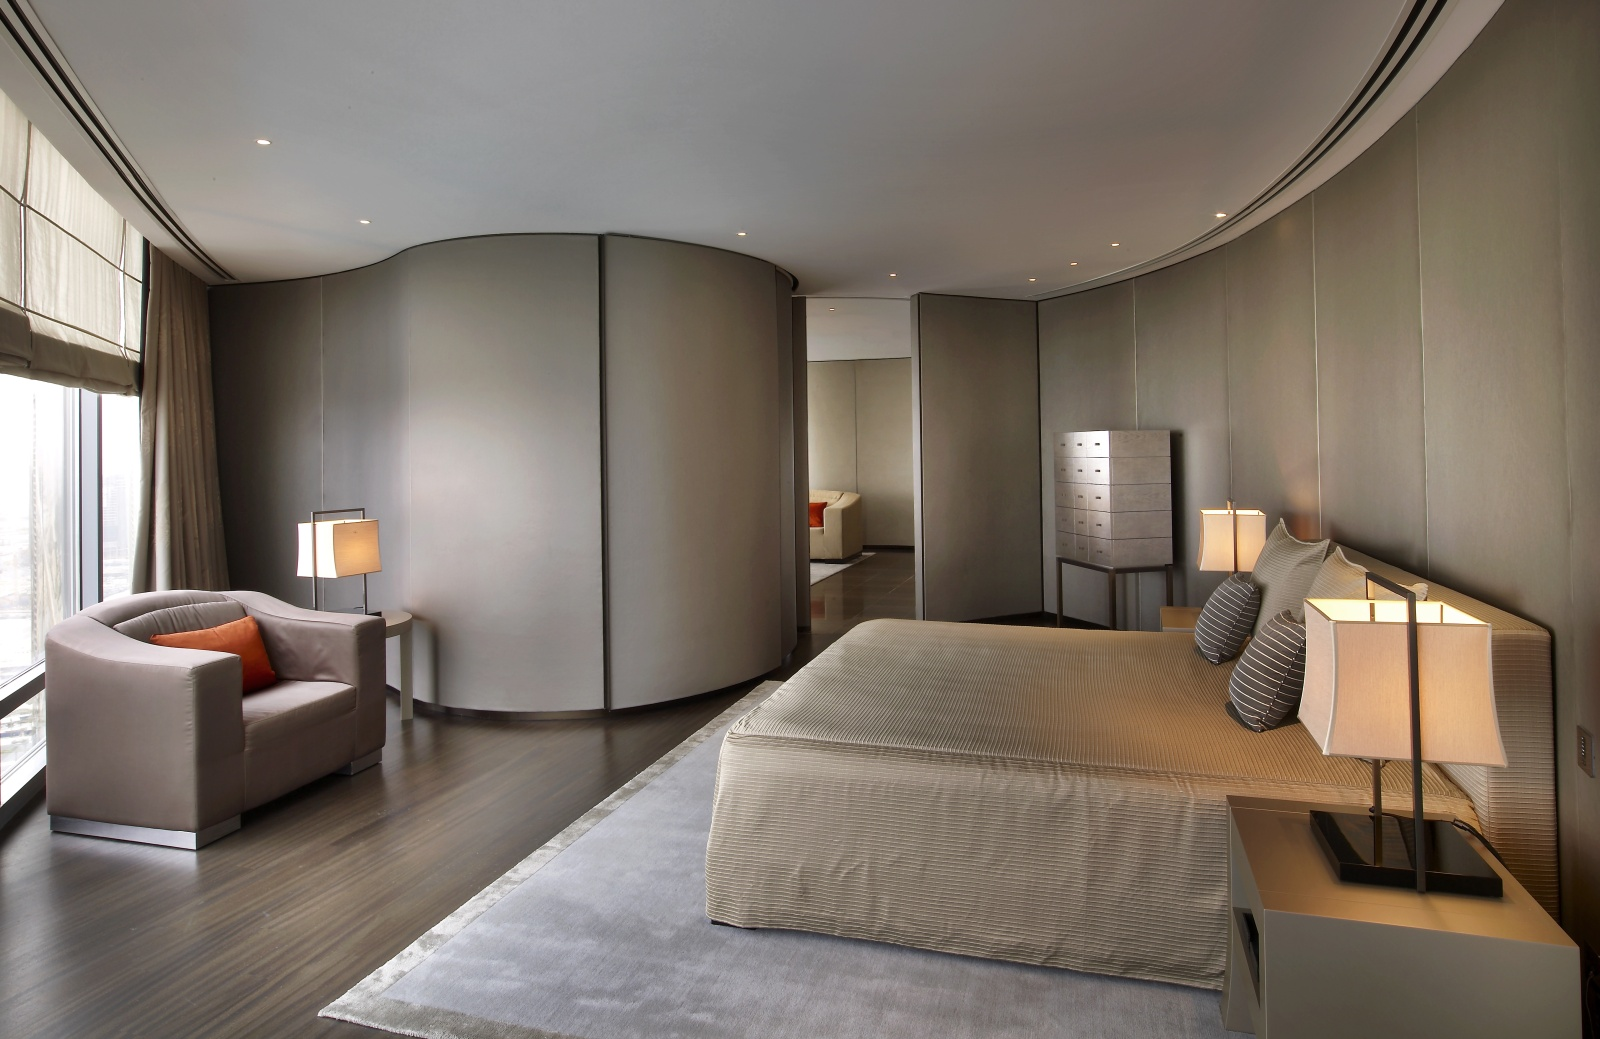 Armani Hotel Dubai - Armani bedroom design